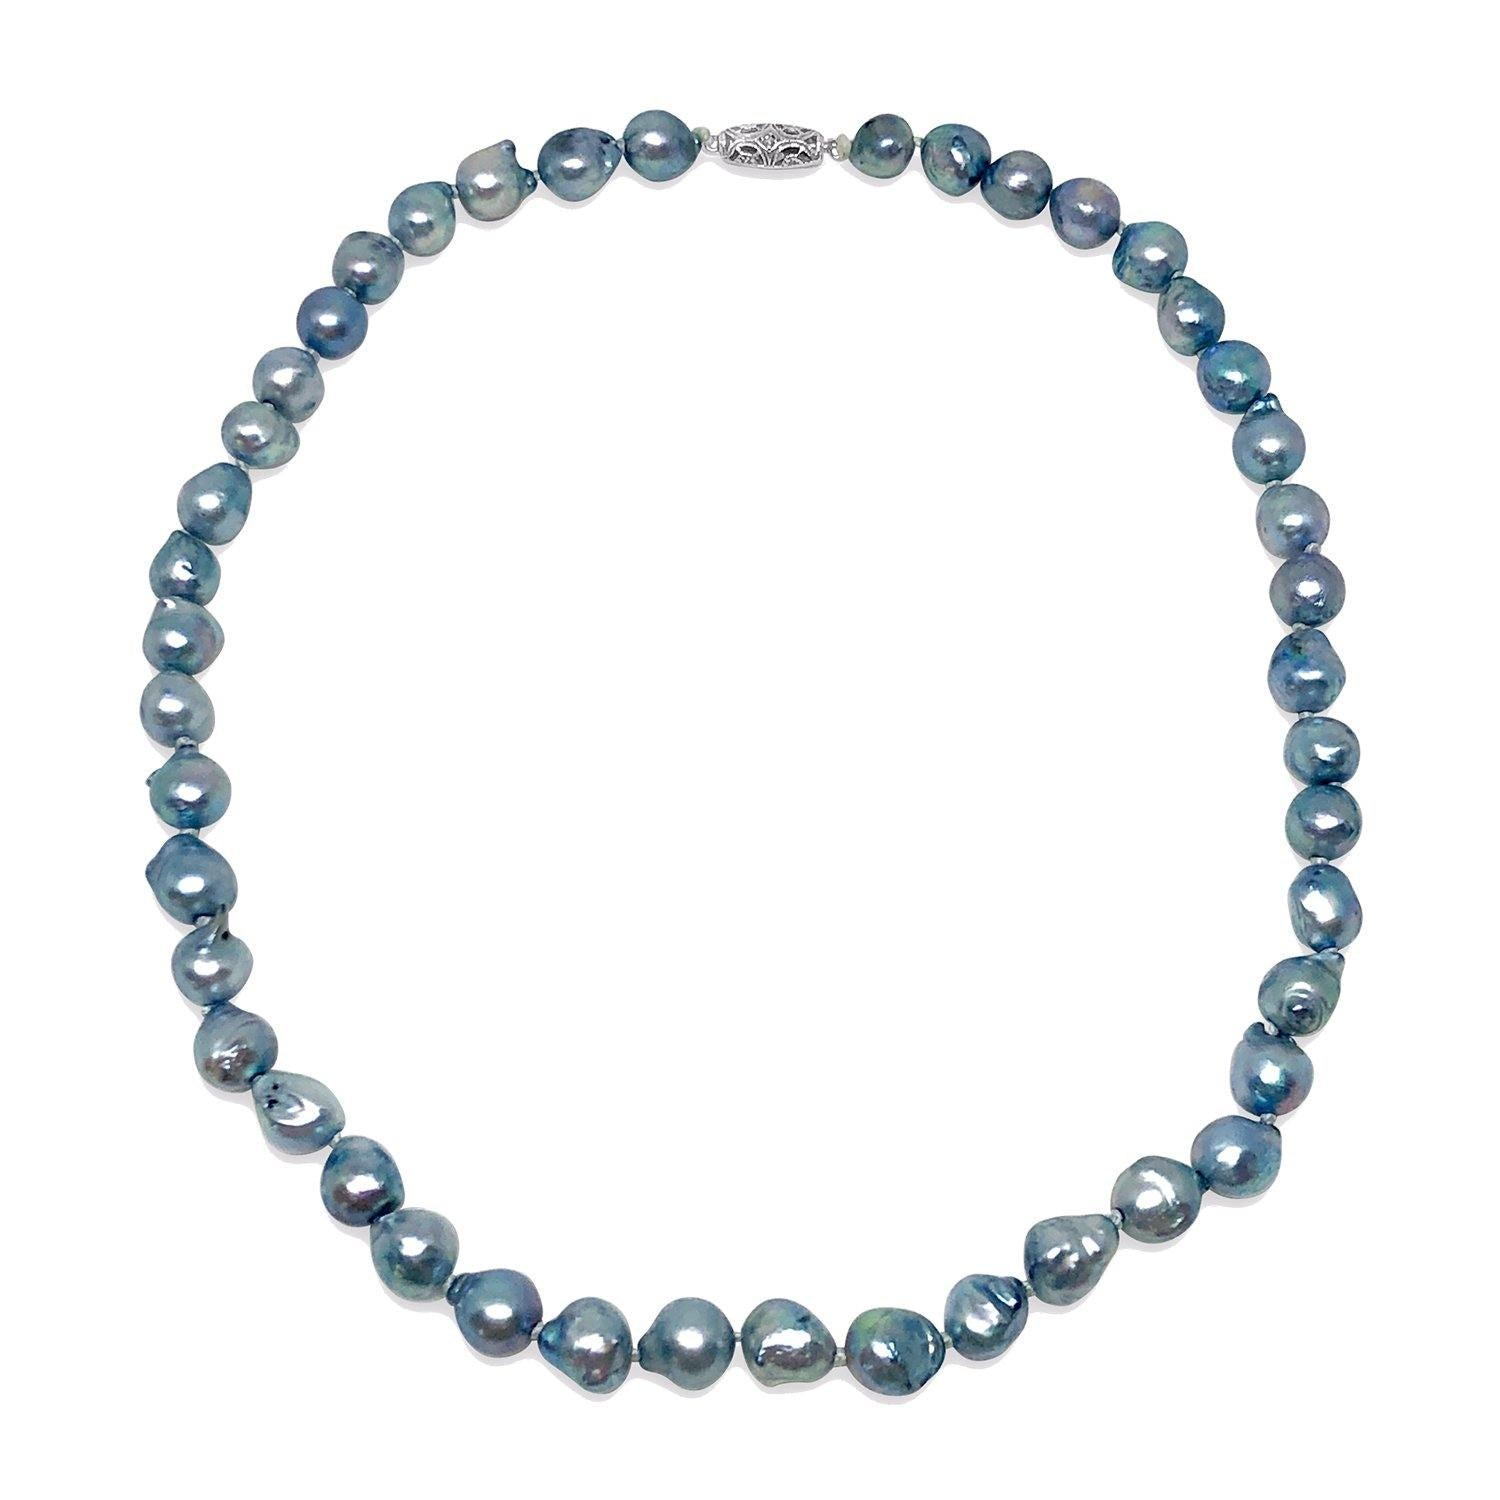 Baroque Blue Mid-Century Japanese Saltwater Cultured Akoya Pearl Choker Necklace - 14K White Gold